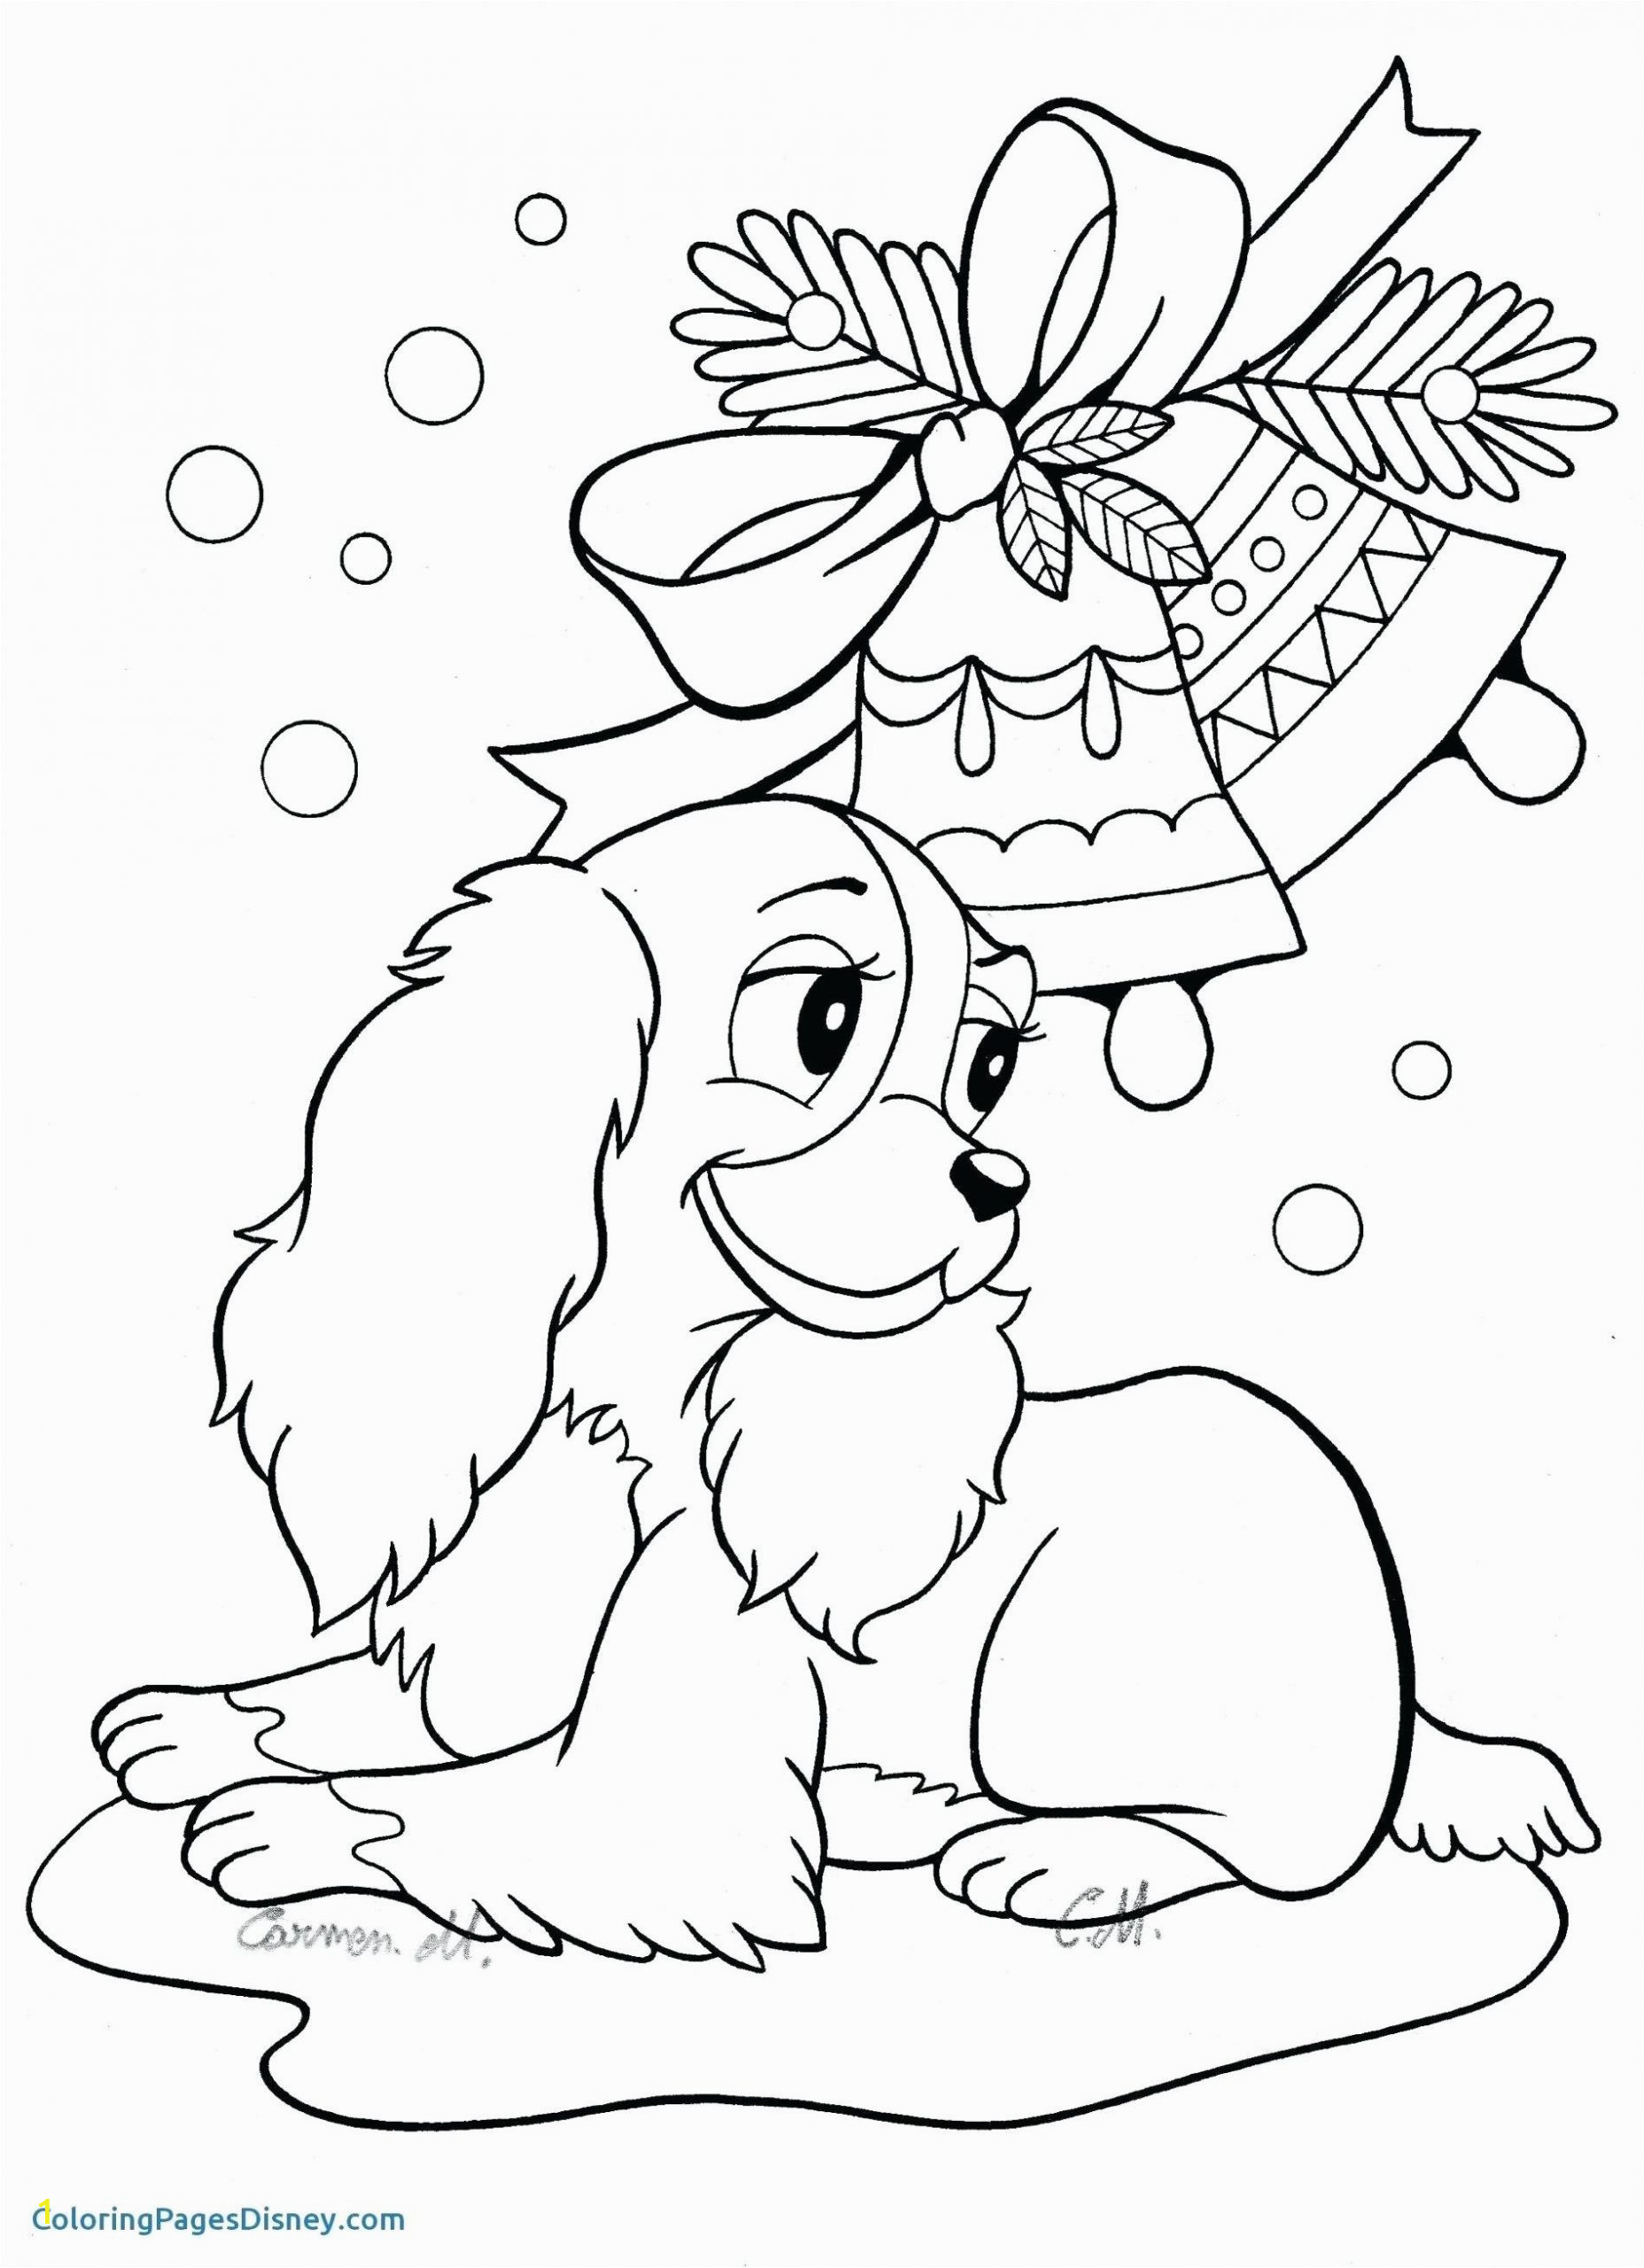 princess coloring pages for kids spring animals clash royale doodle fusion easy mandala nutcracker page zen summer worksheets christmas colouring children horse in